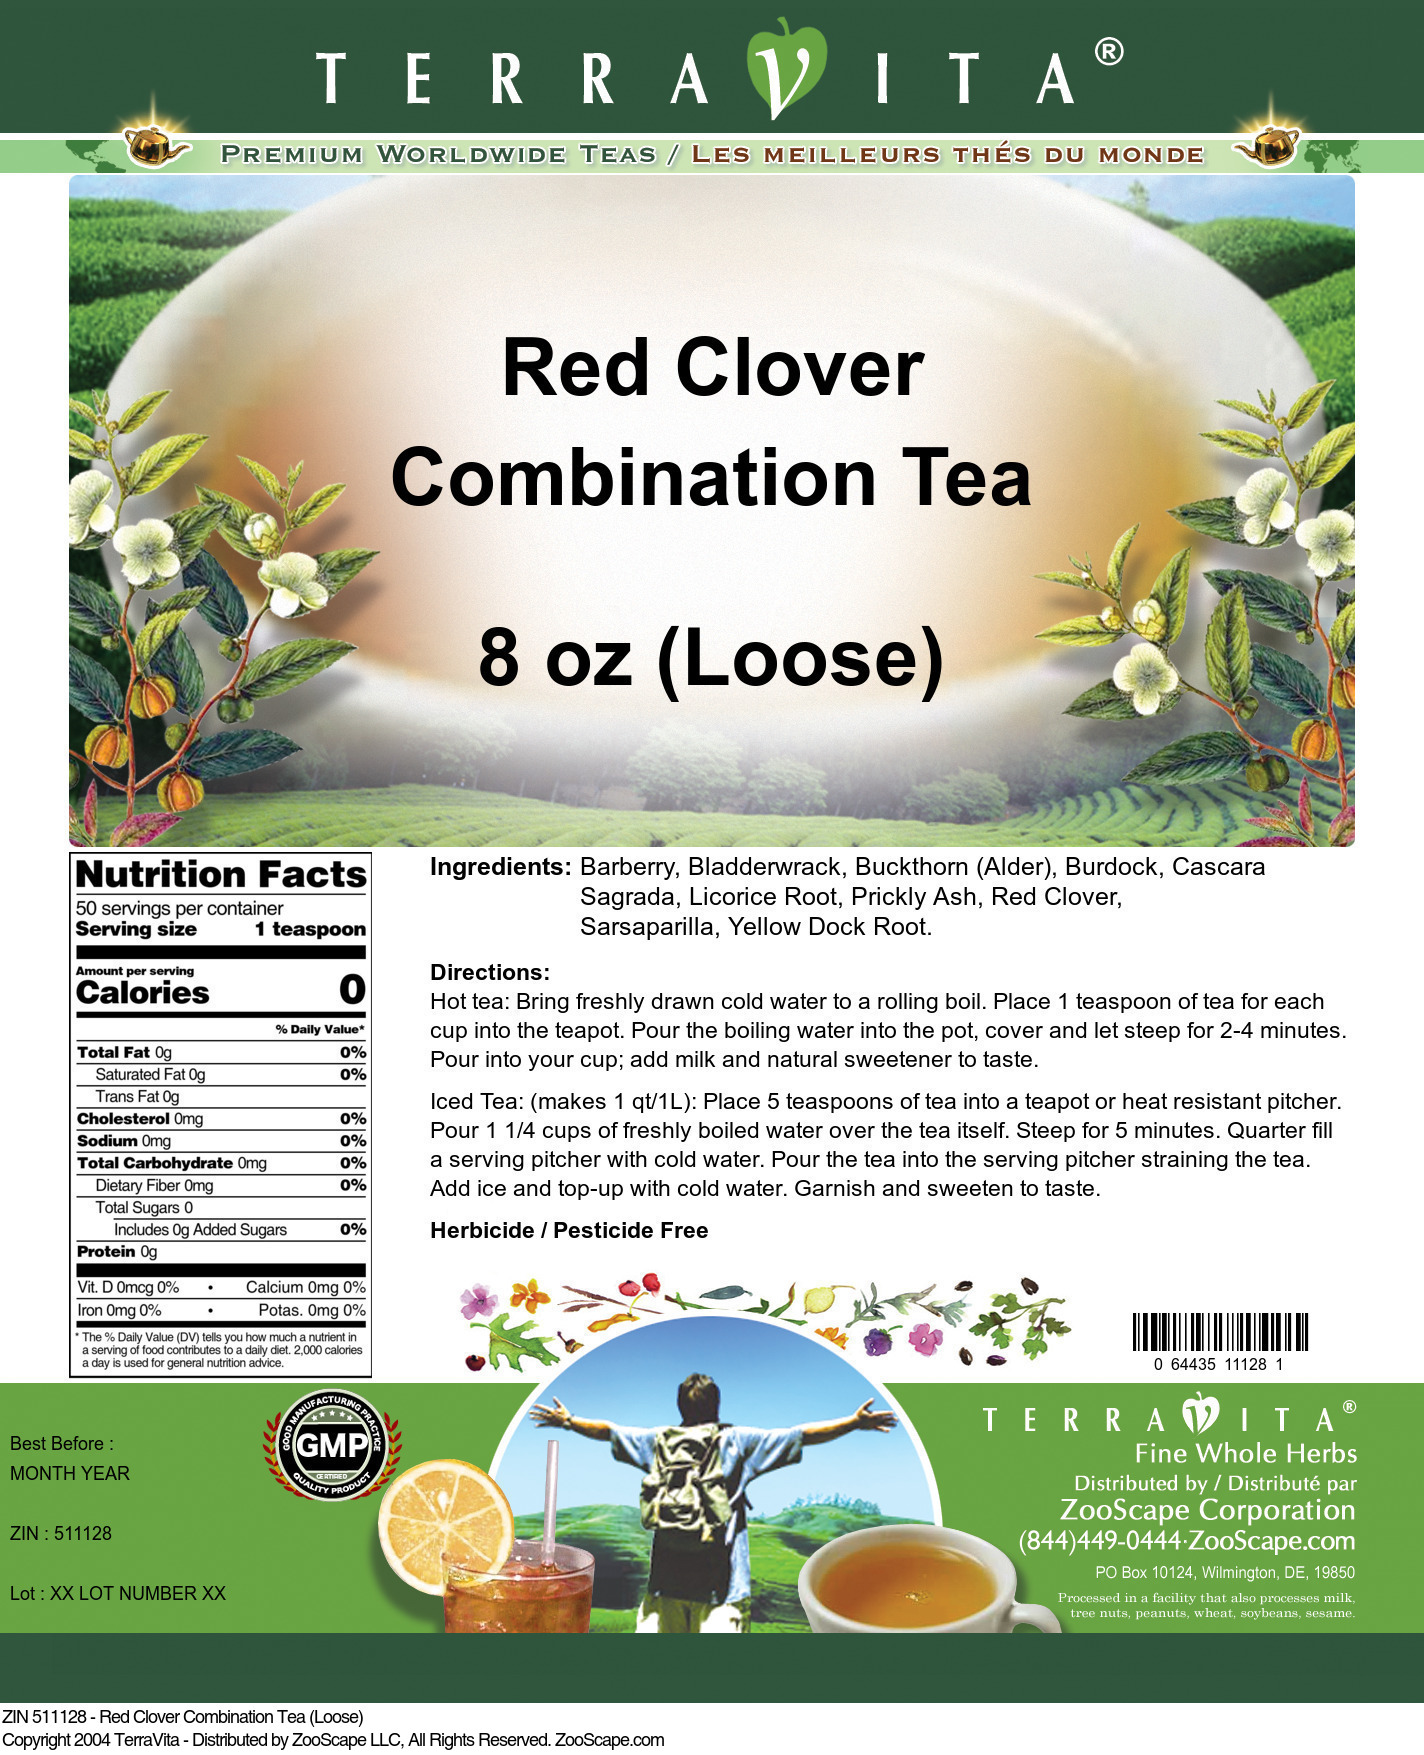 Red Clover Combination